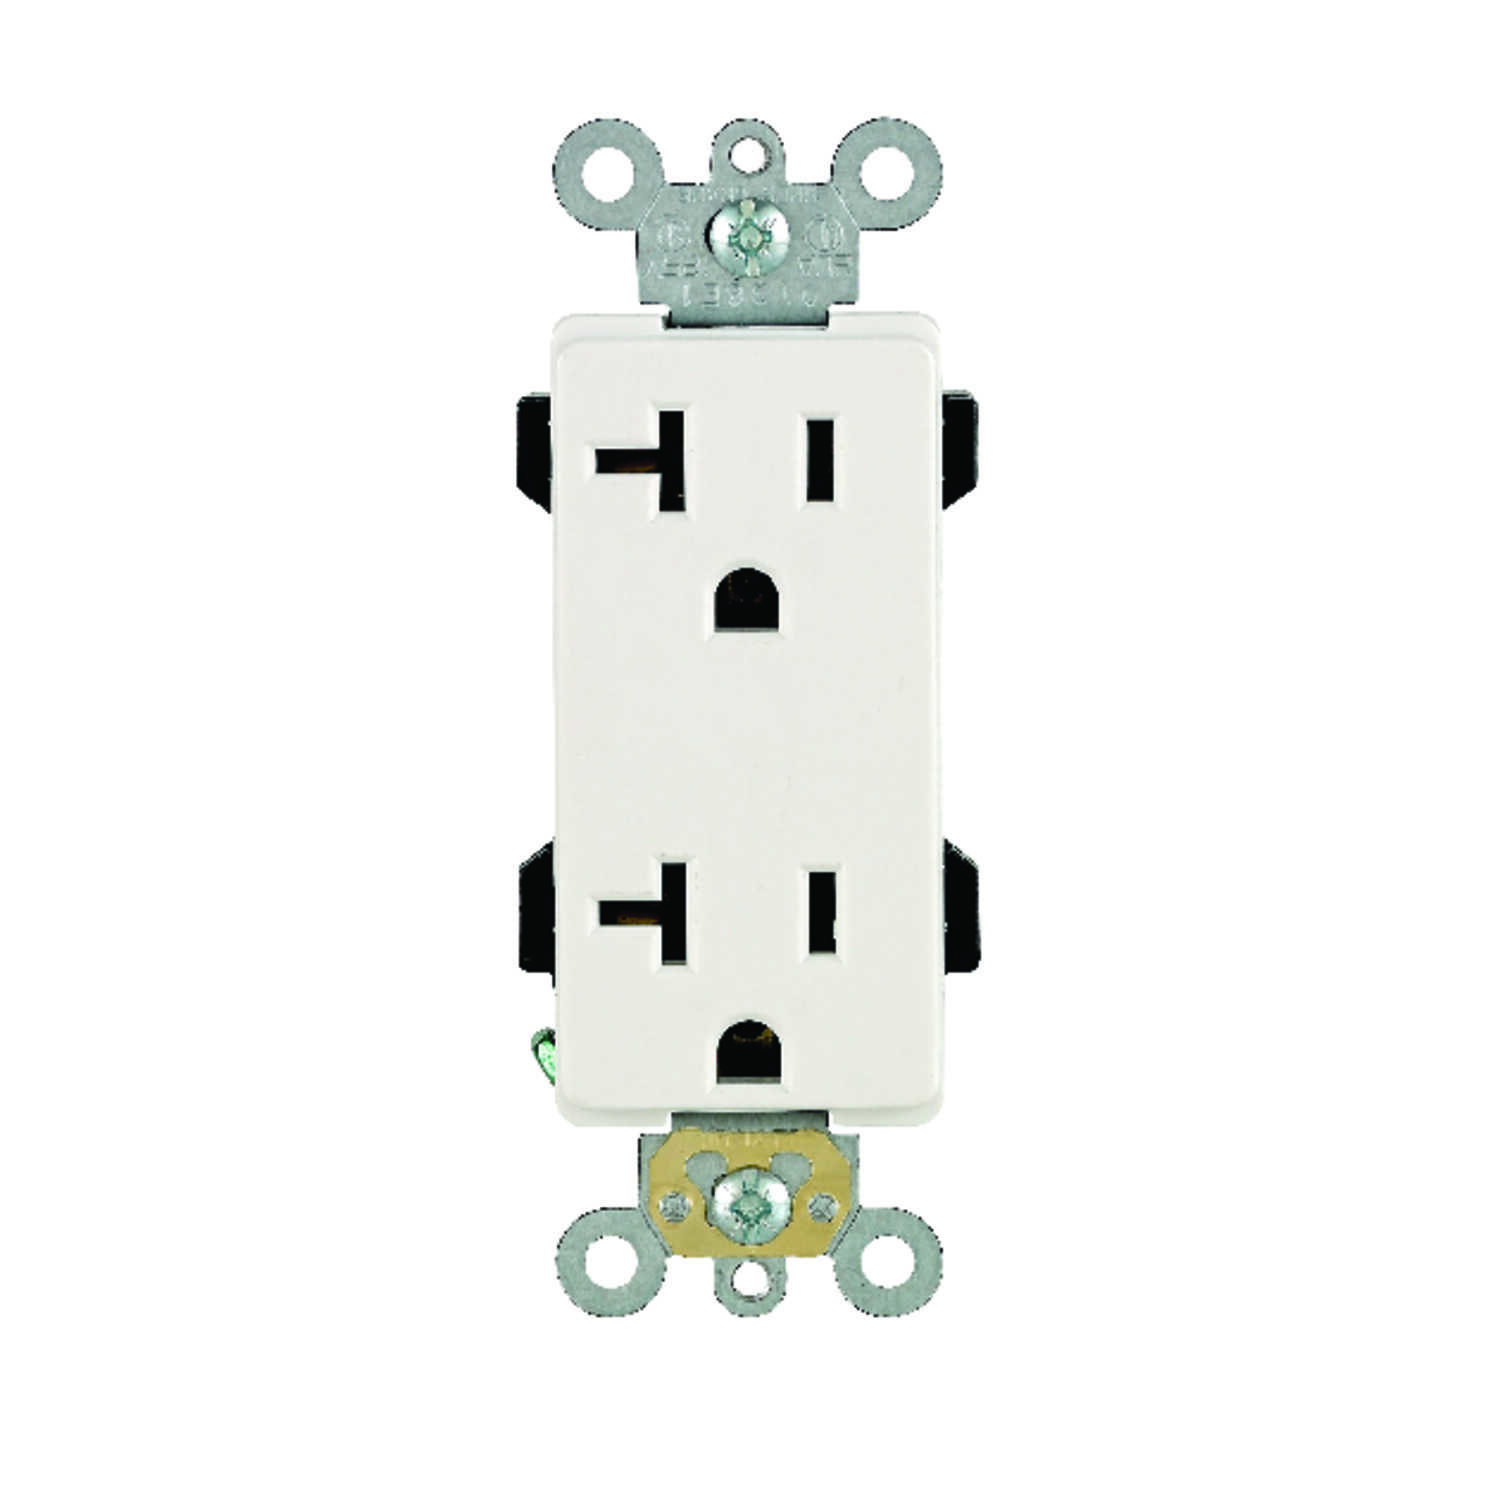 Leviton  Decora Plus  20 amps 125 volt White  Outlet  5-20R  1 pk